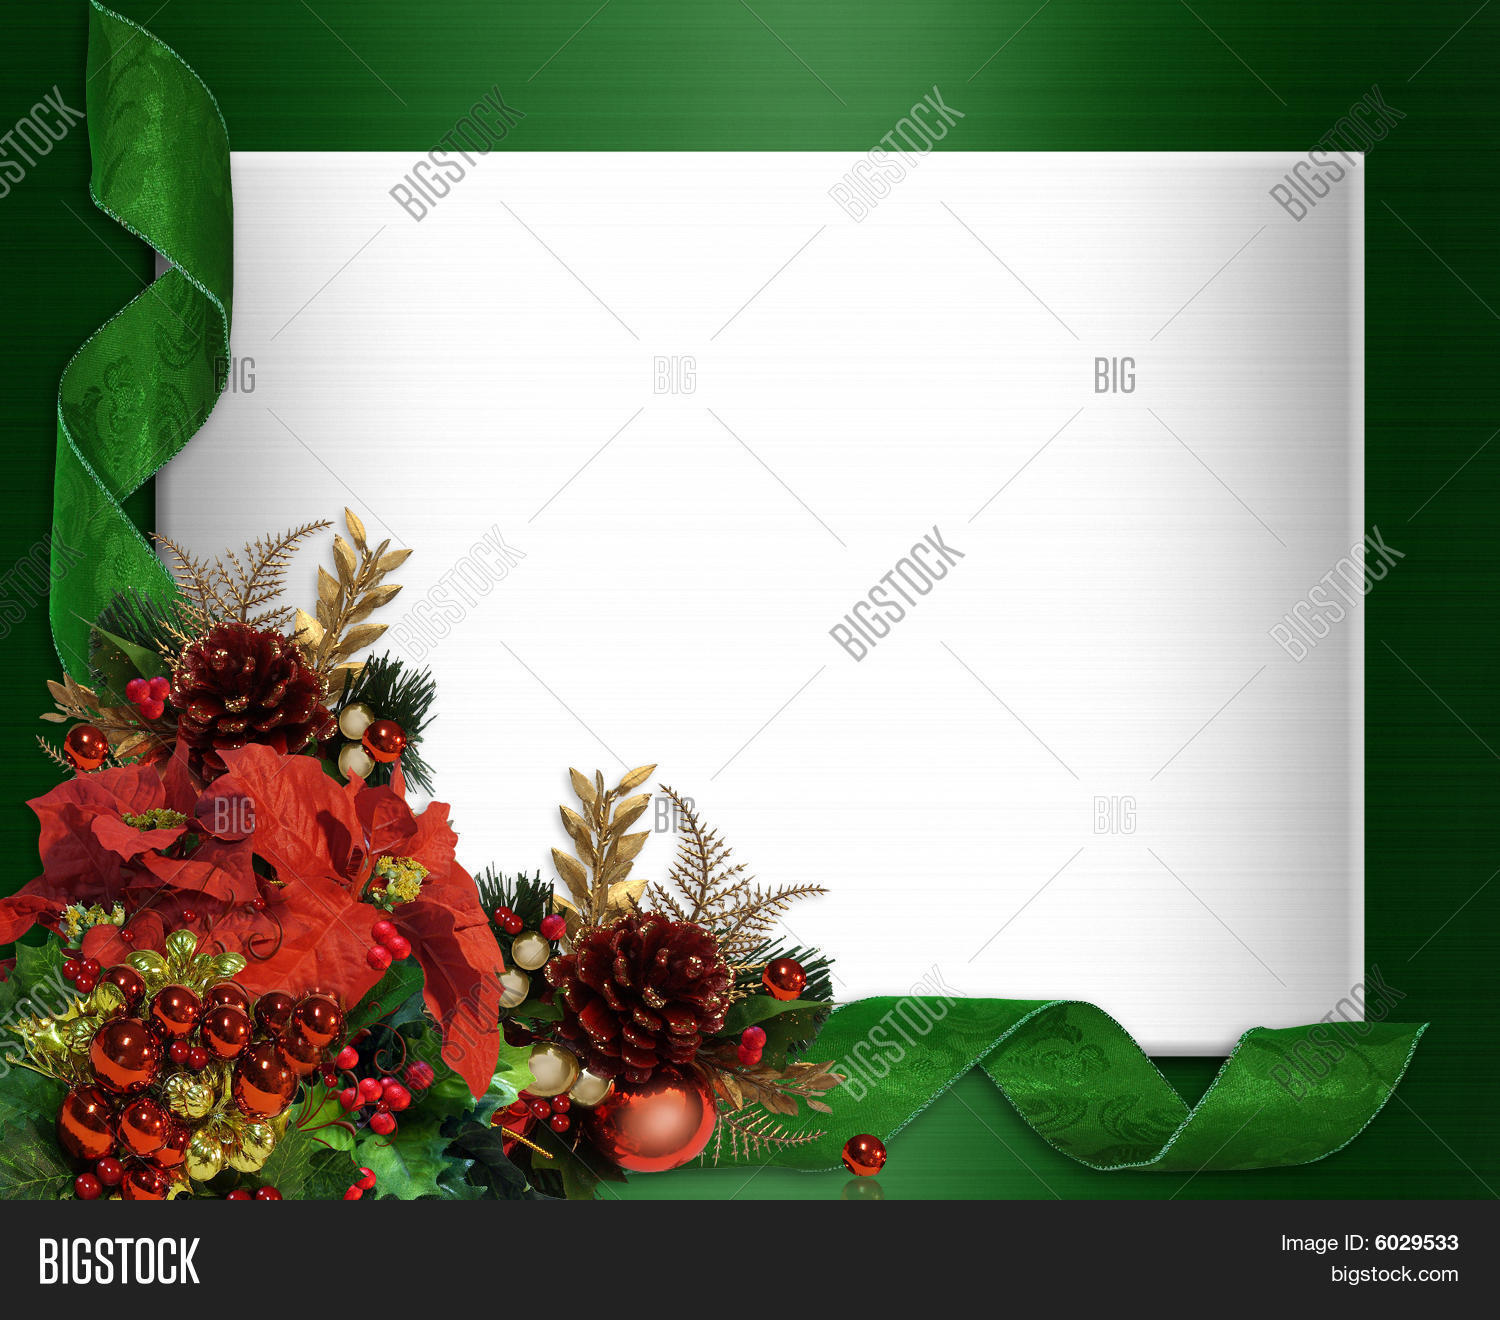 Christmas Border Elegant Corner Image & Photo | Bigstock